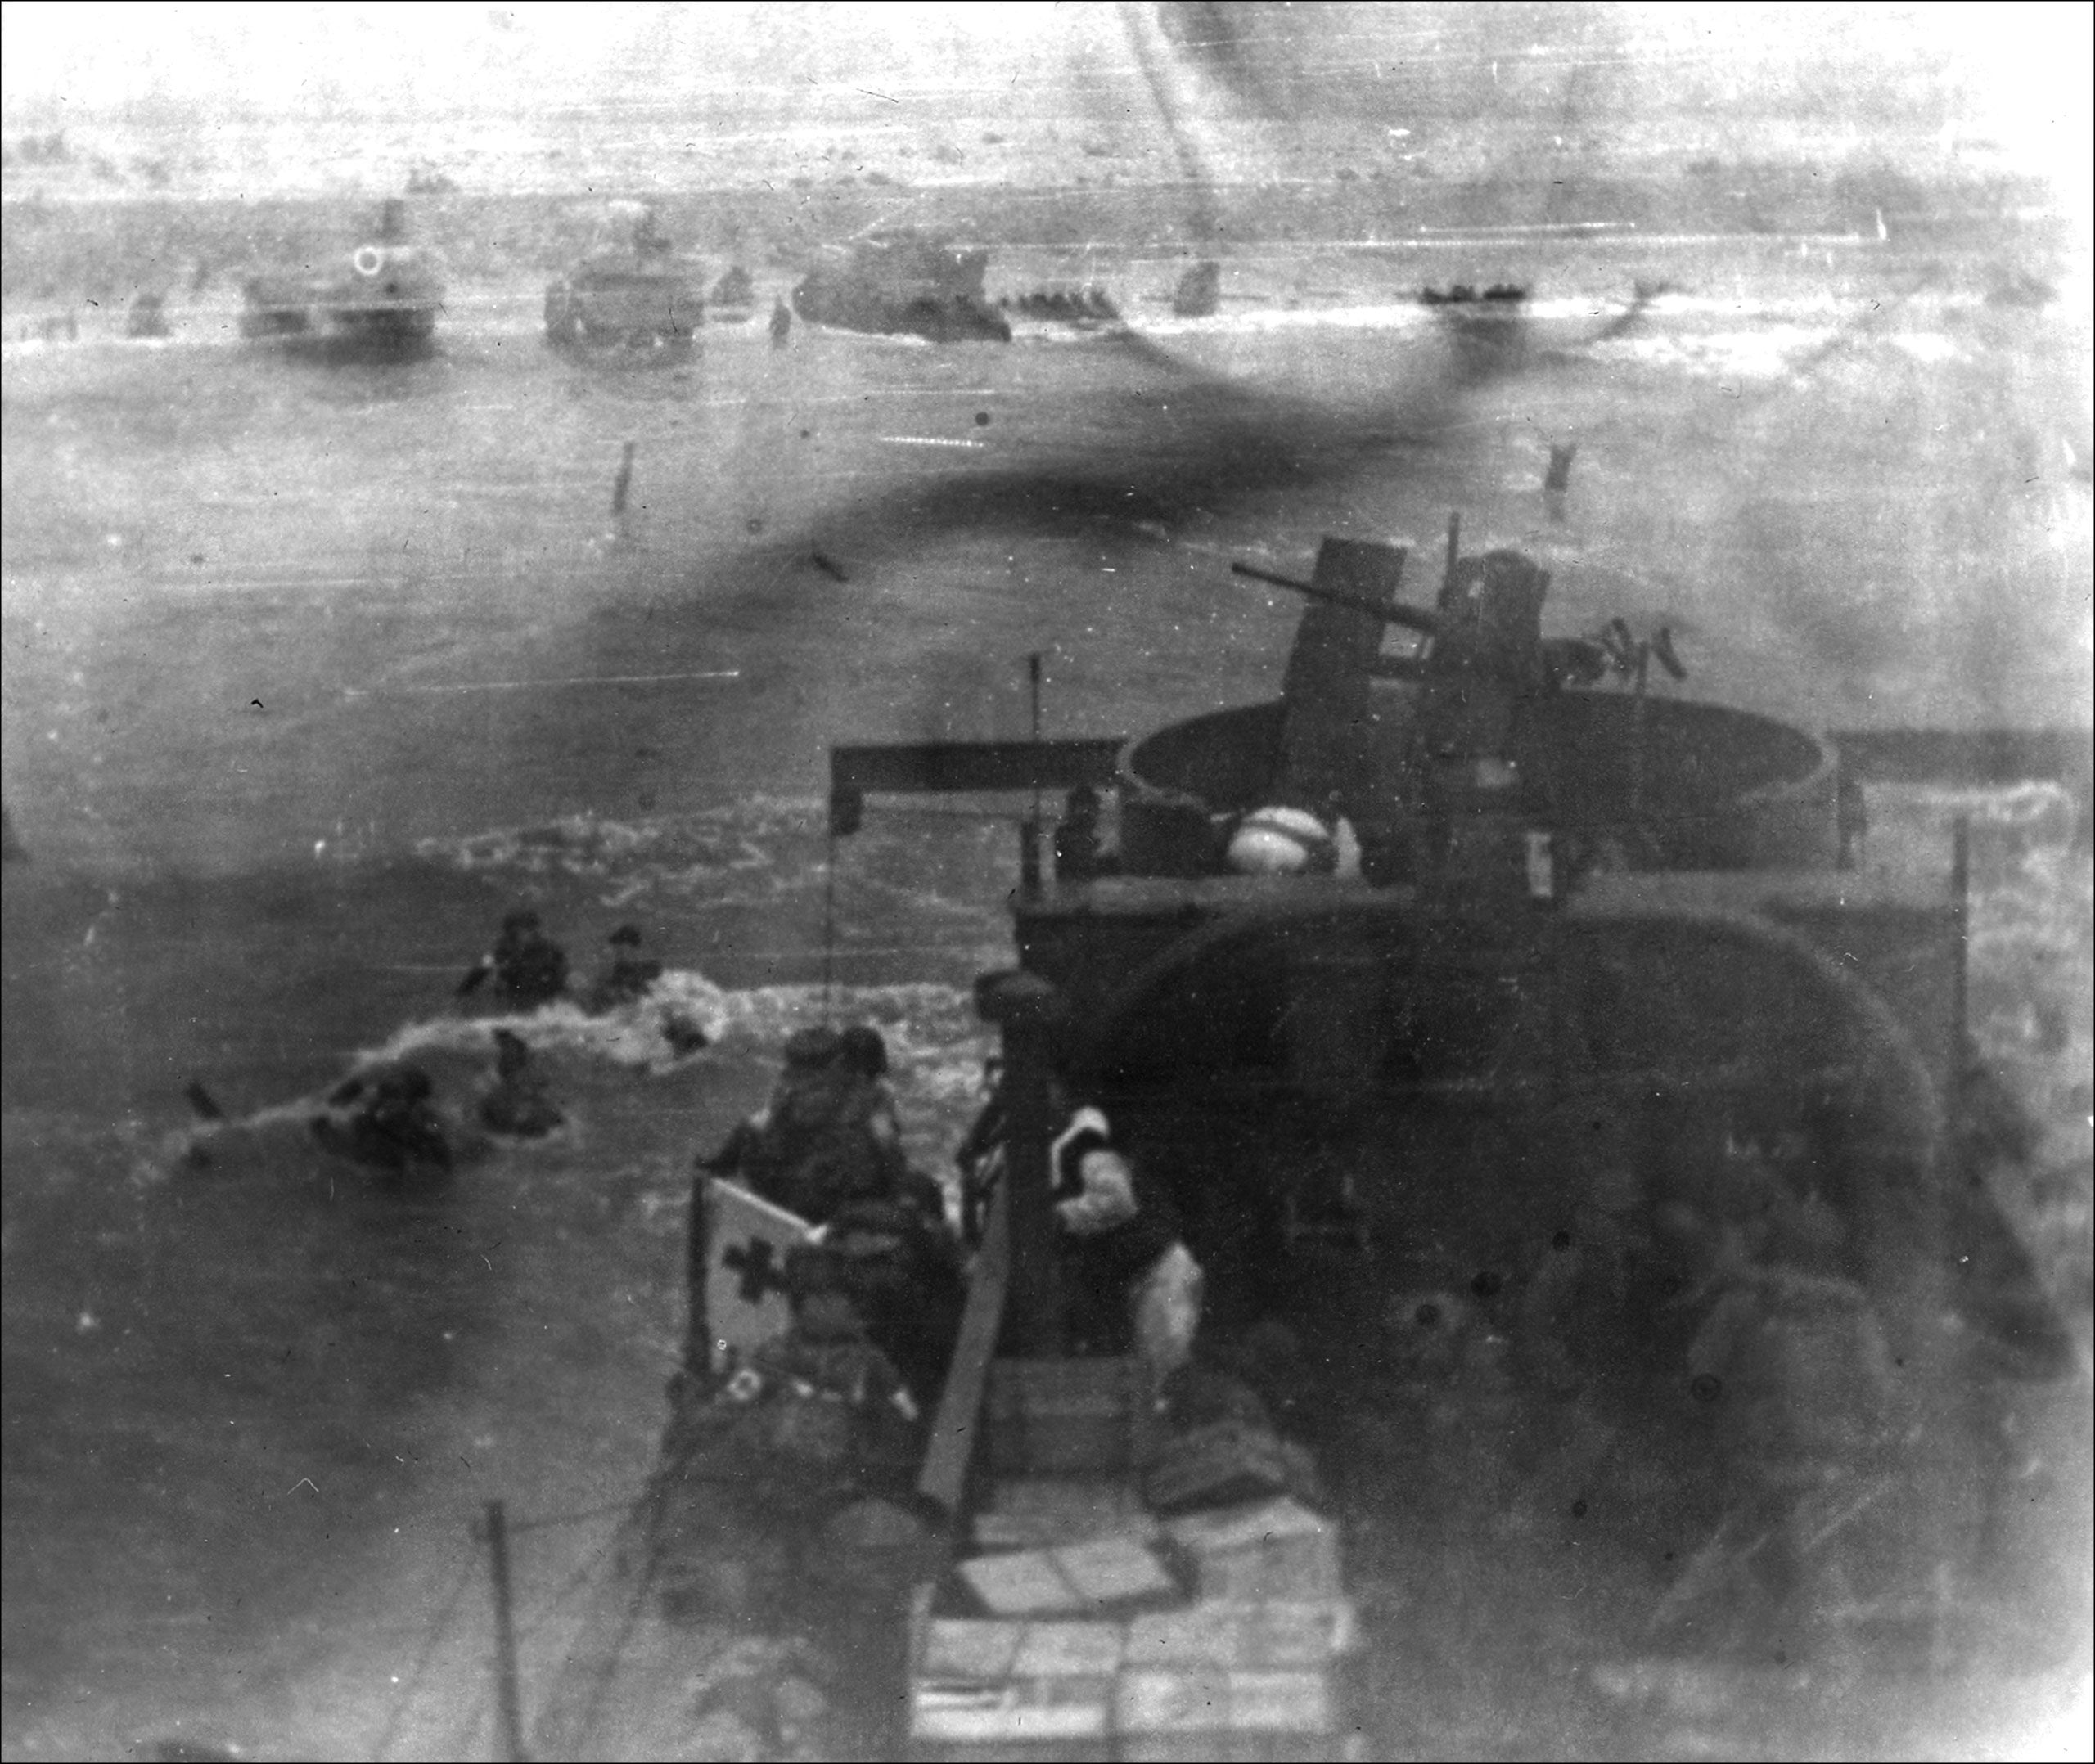 LCI 94, Omaha Beach. A medical detachment from the 3rd Battalion, 116th Infantry Regiment, 29th Infantry Division lands at Dog Red, Omaha Beach.